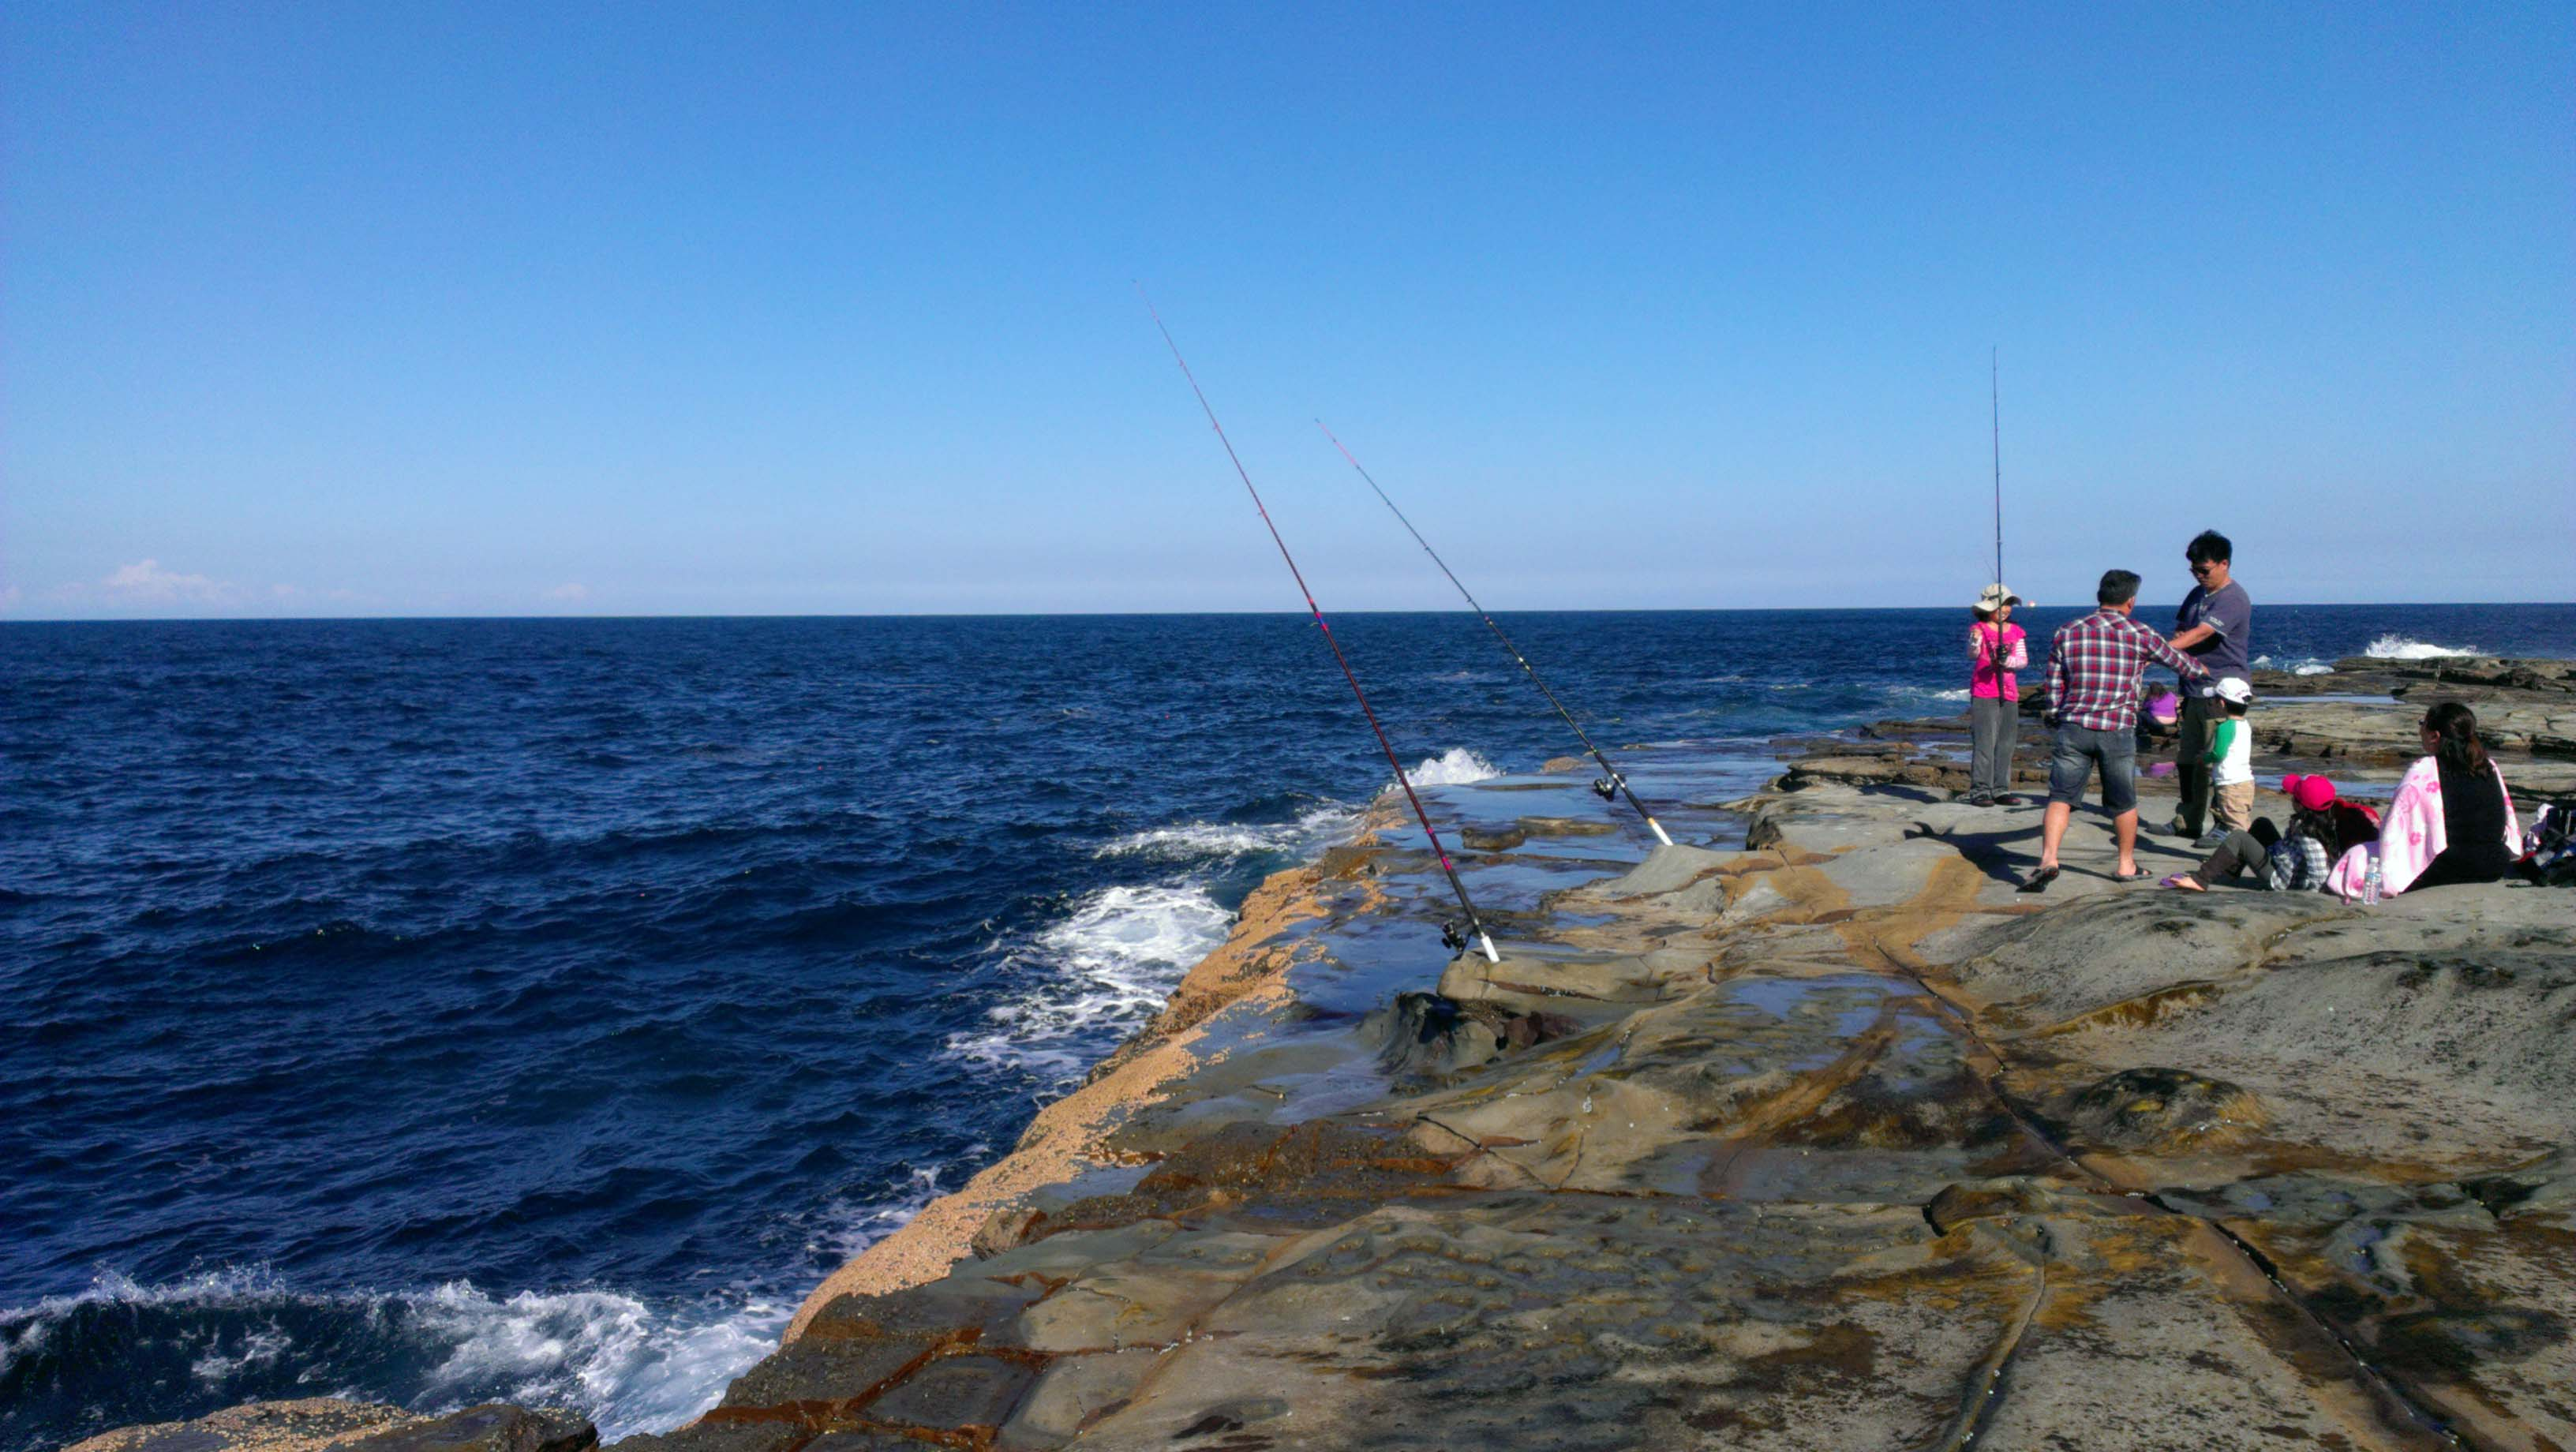 terrigal fishing industry | terrigal.com.au